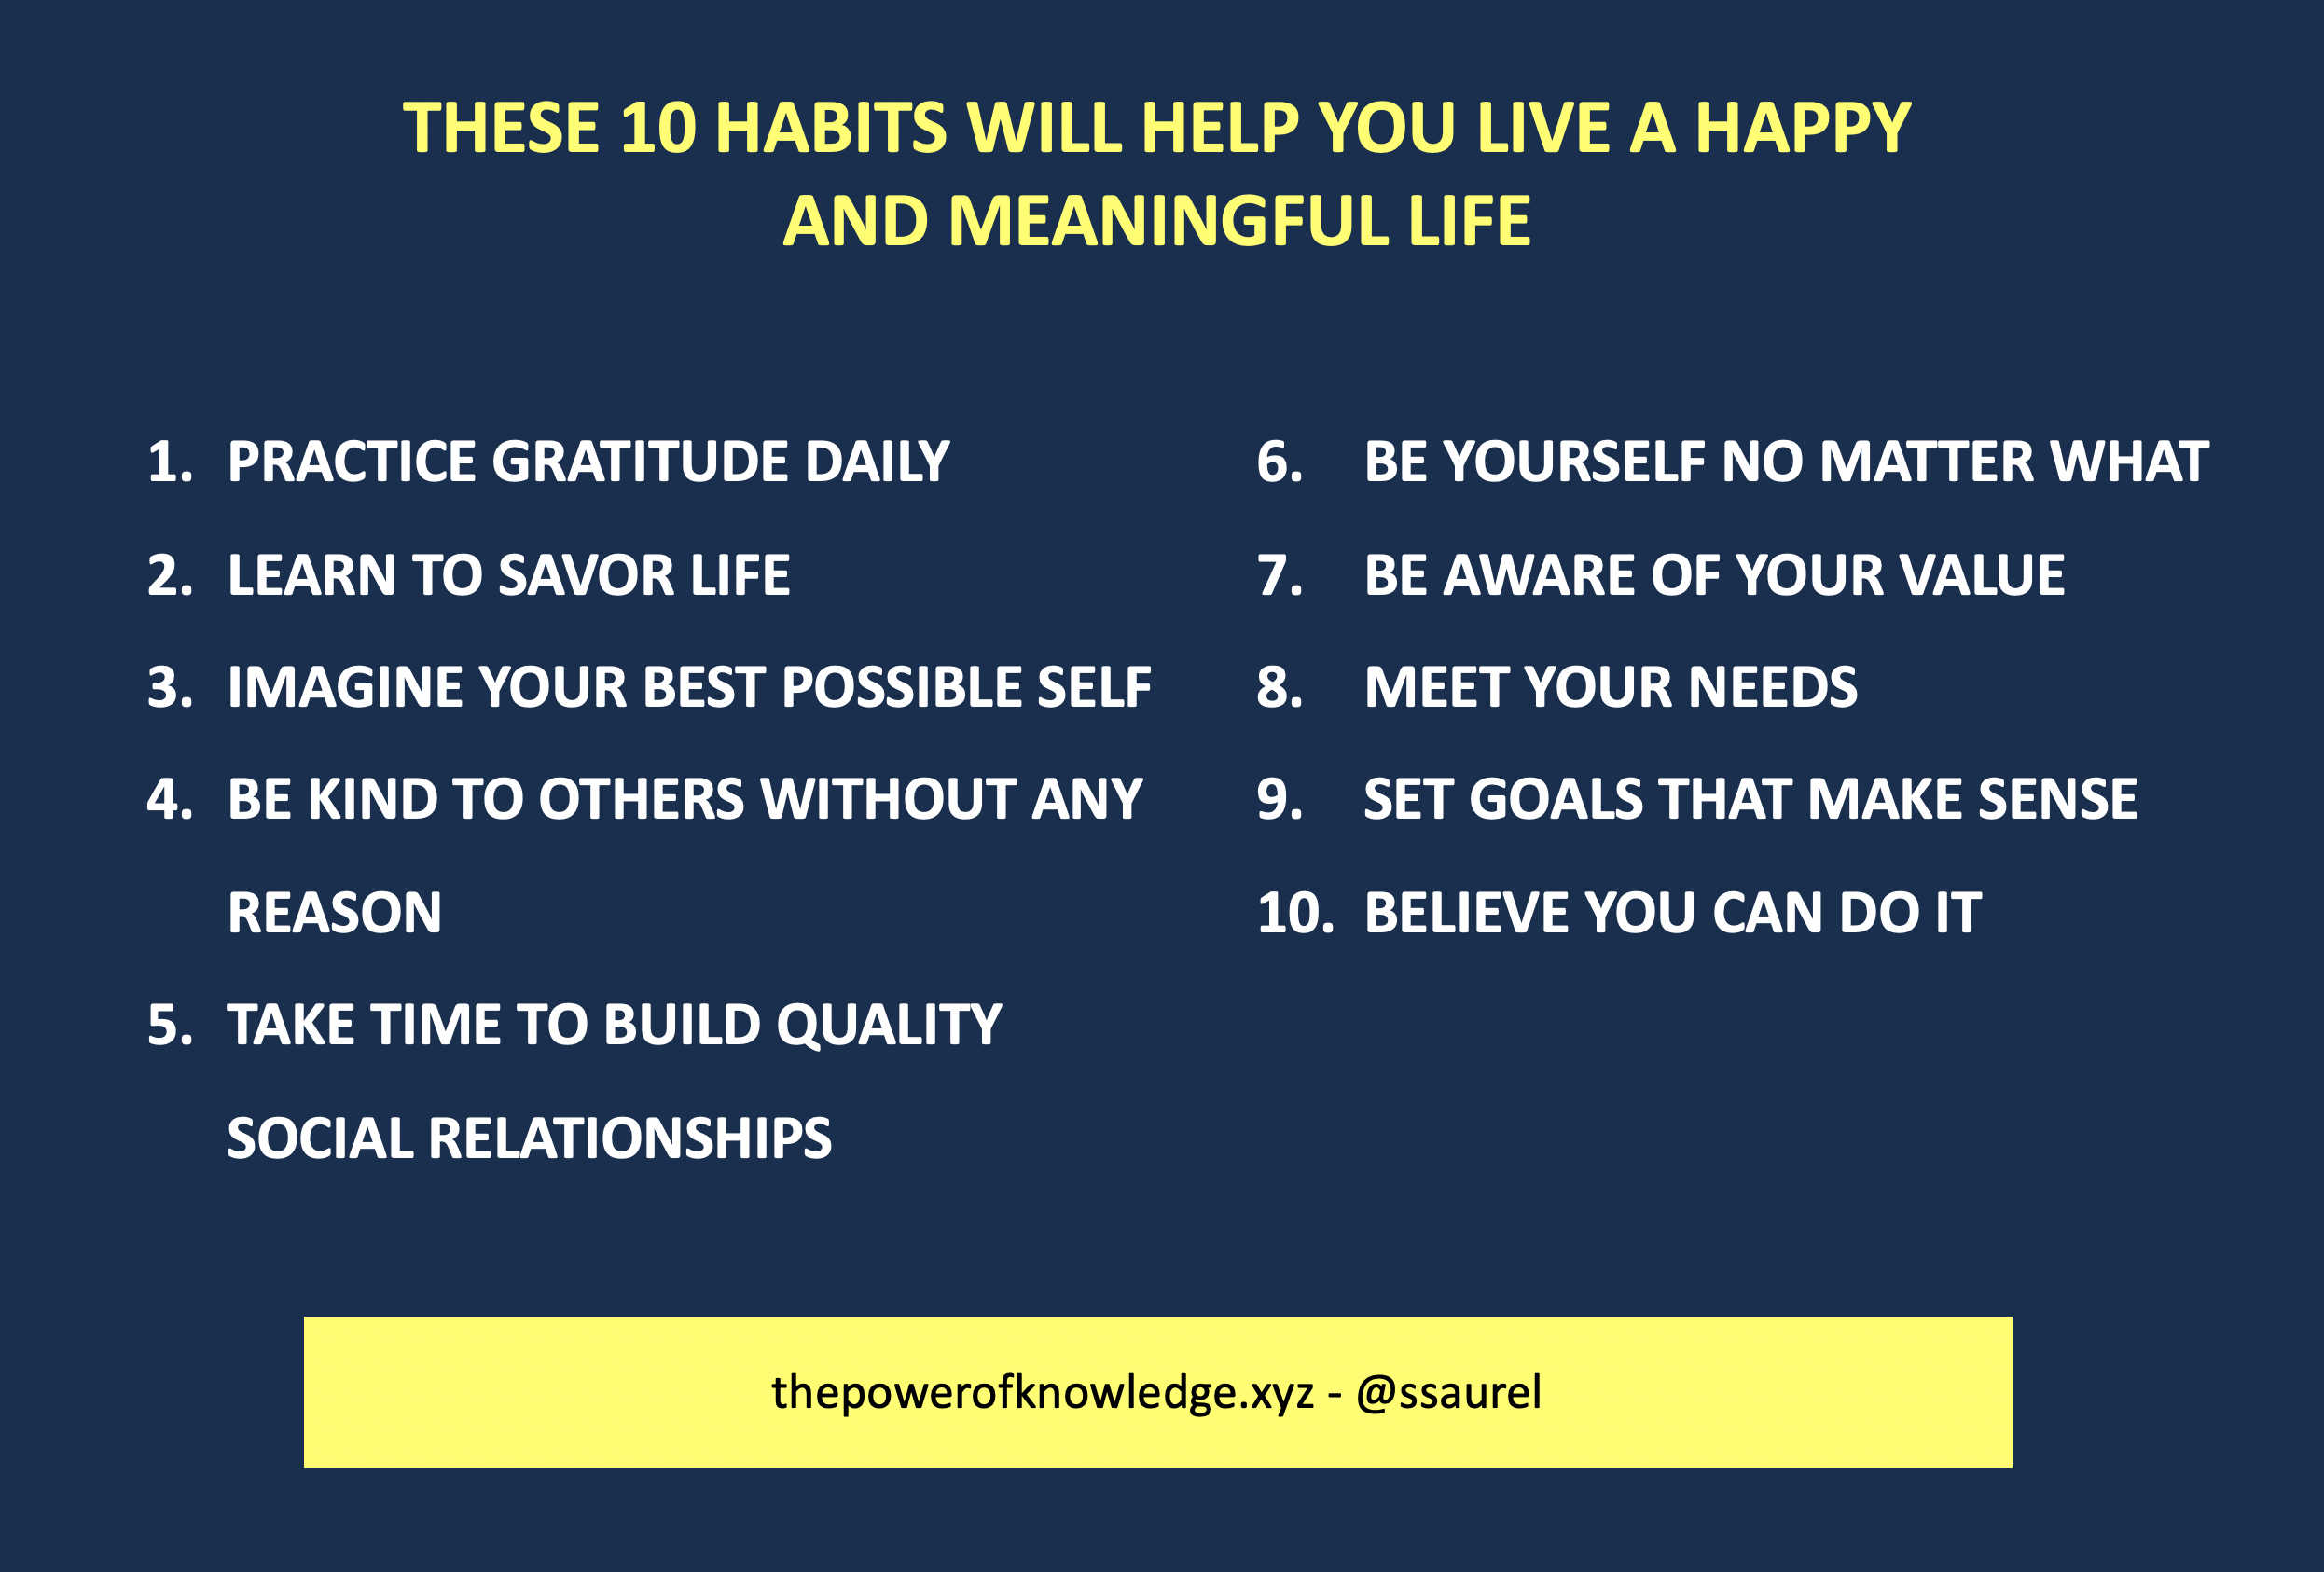 [Image] These 10 habits will help you live a happy and meaningful life